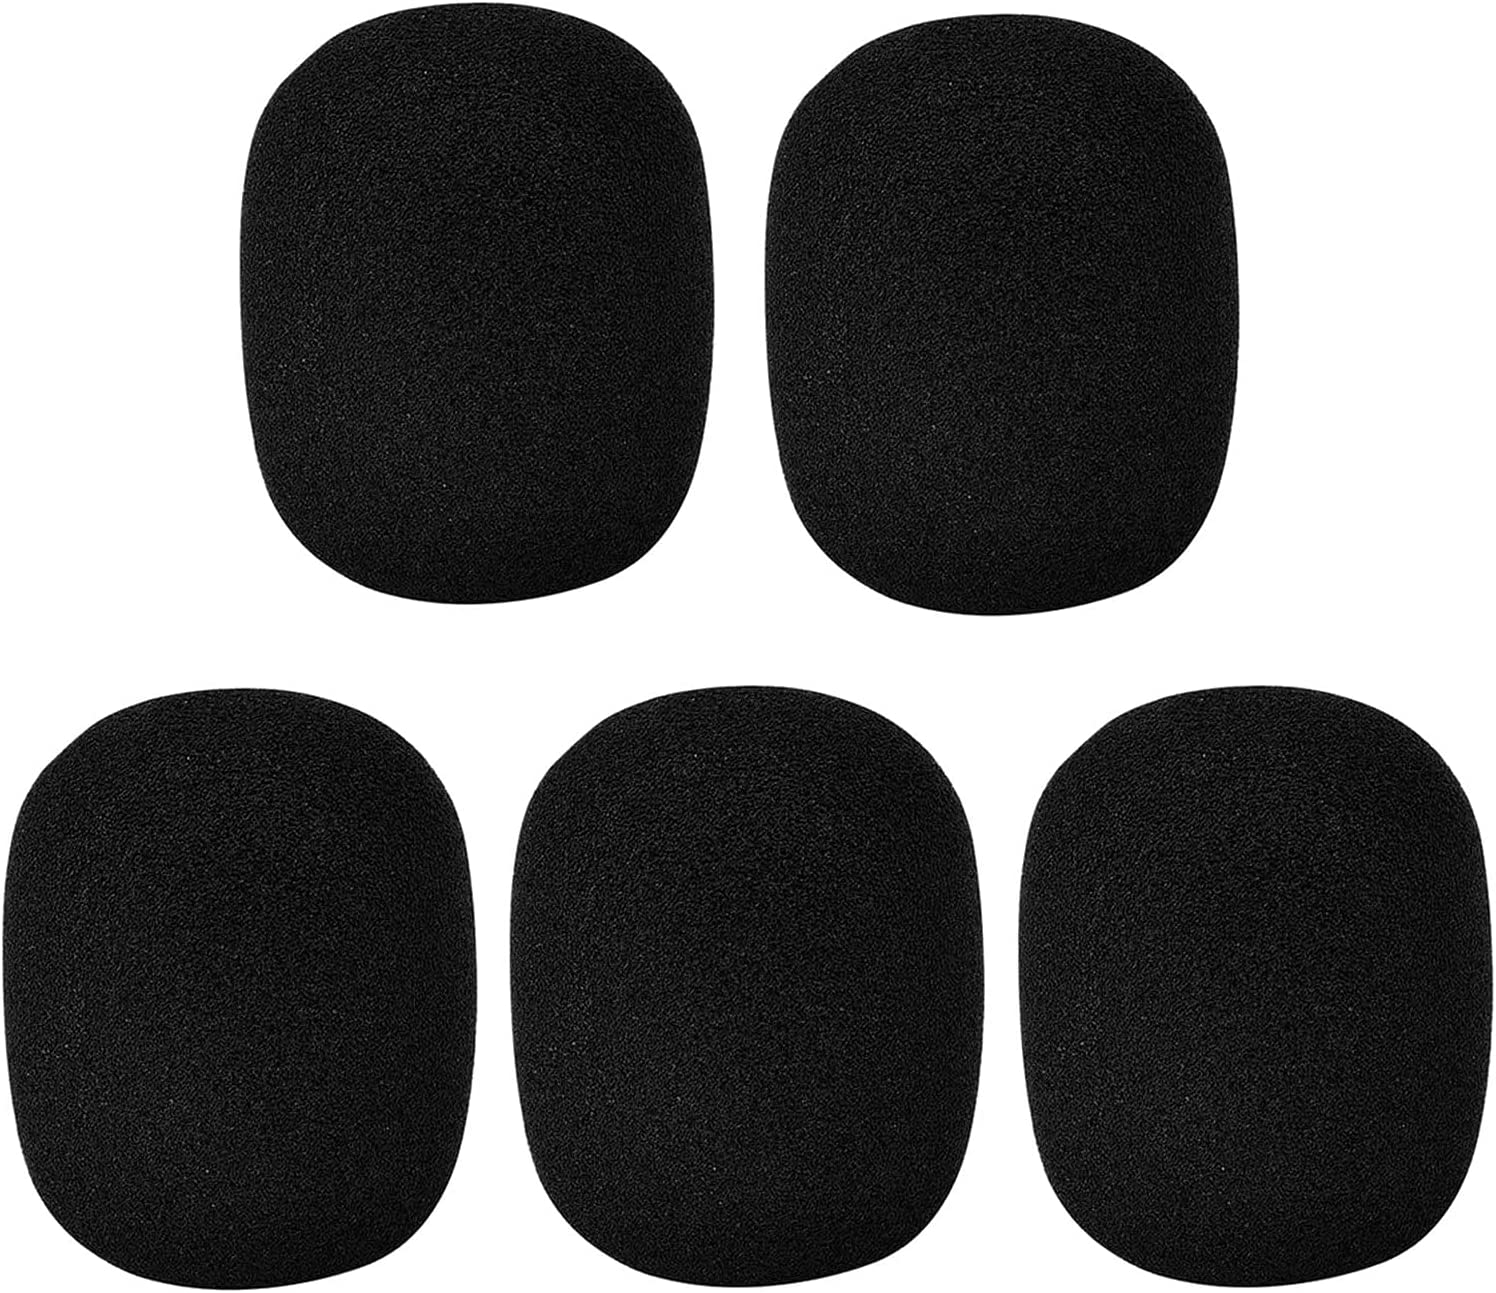 5 Pack Large Max 50% OFF Foam Al sold out. Cover Mic Handheld Microphone Windscreen